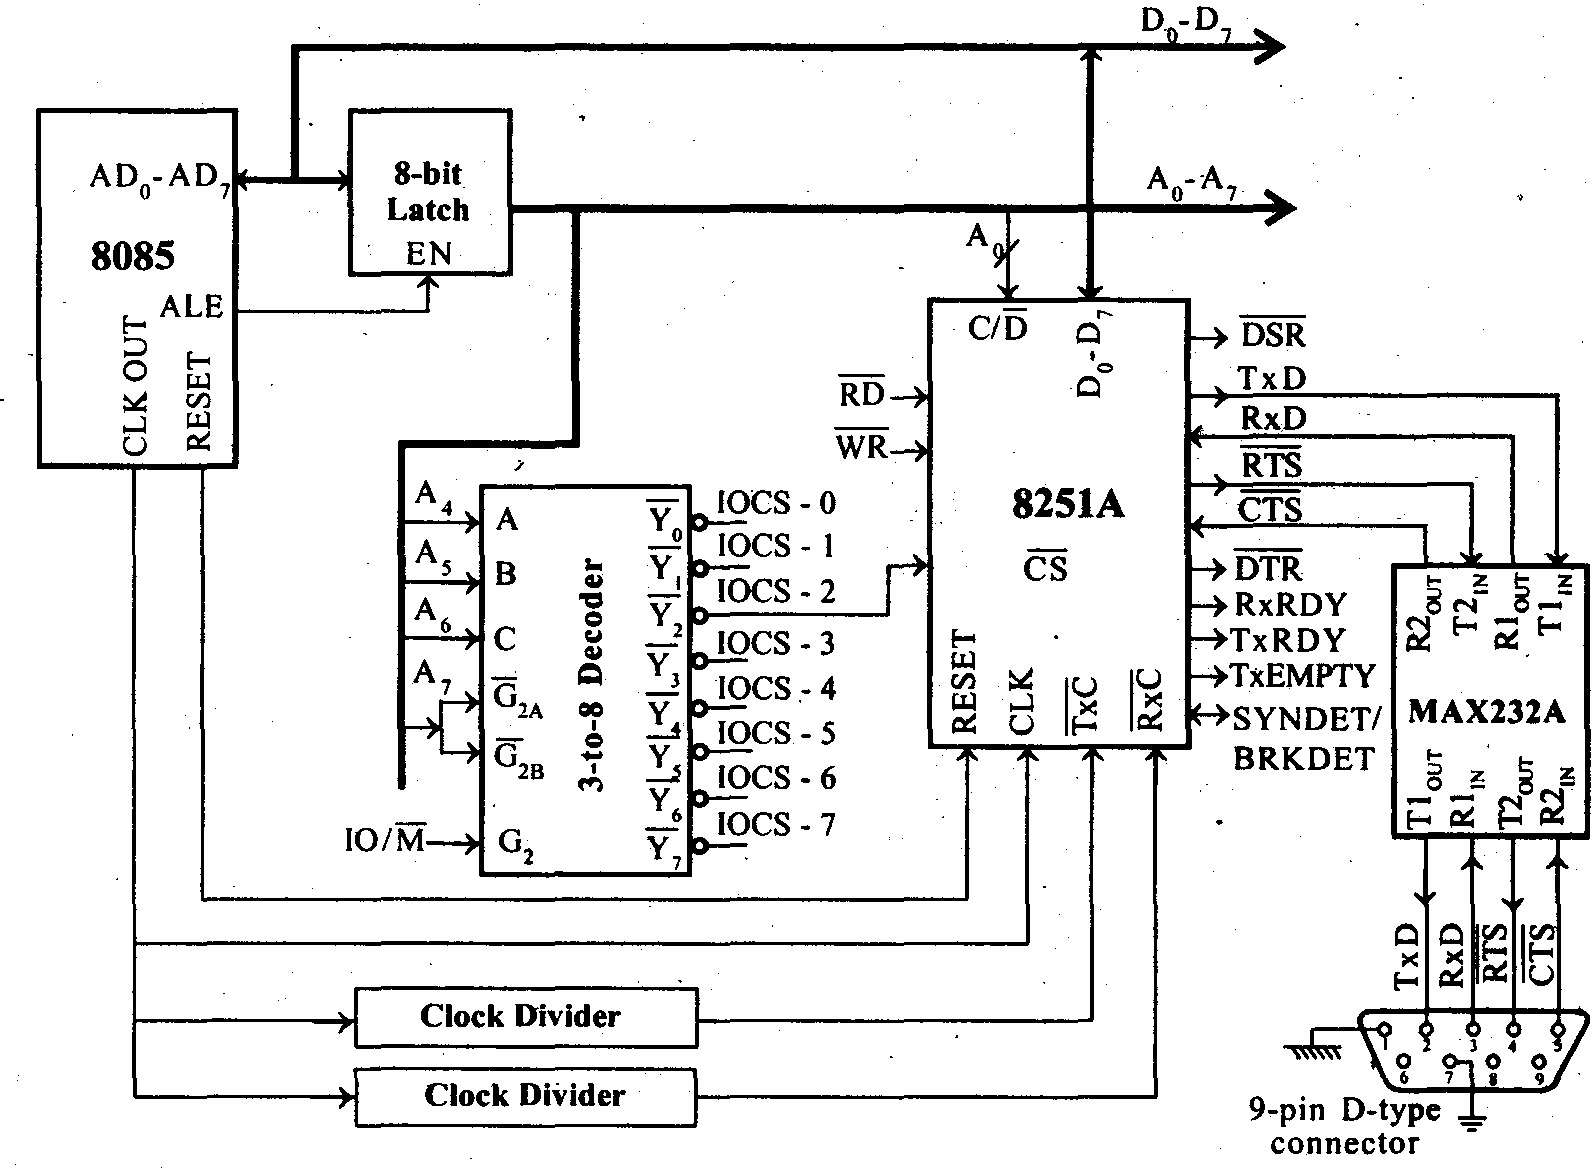 Wireless Light Switch moreover Alarm With Pic 16f84 furthermore 126 Hyundai Atos Fuse Diagram moreover Tube Driver furthermore 13684542. on circuit diagram